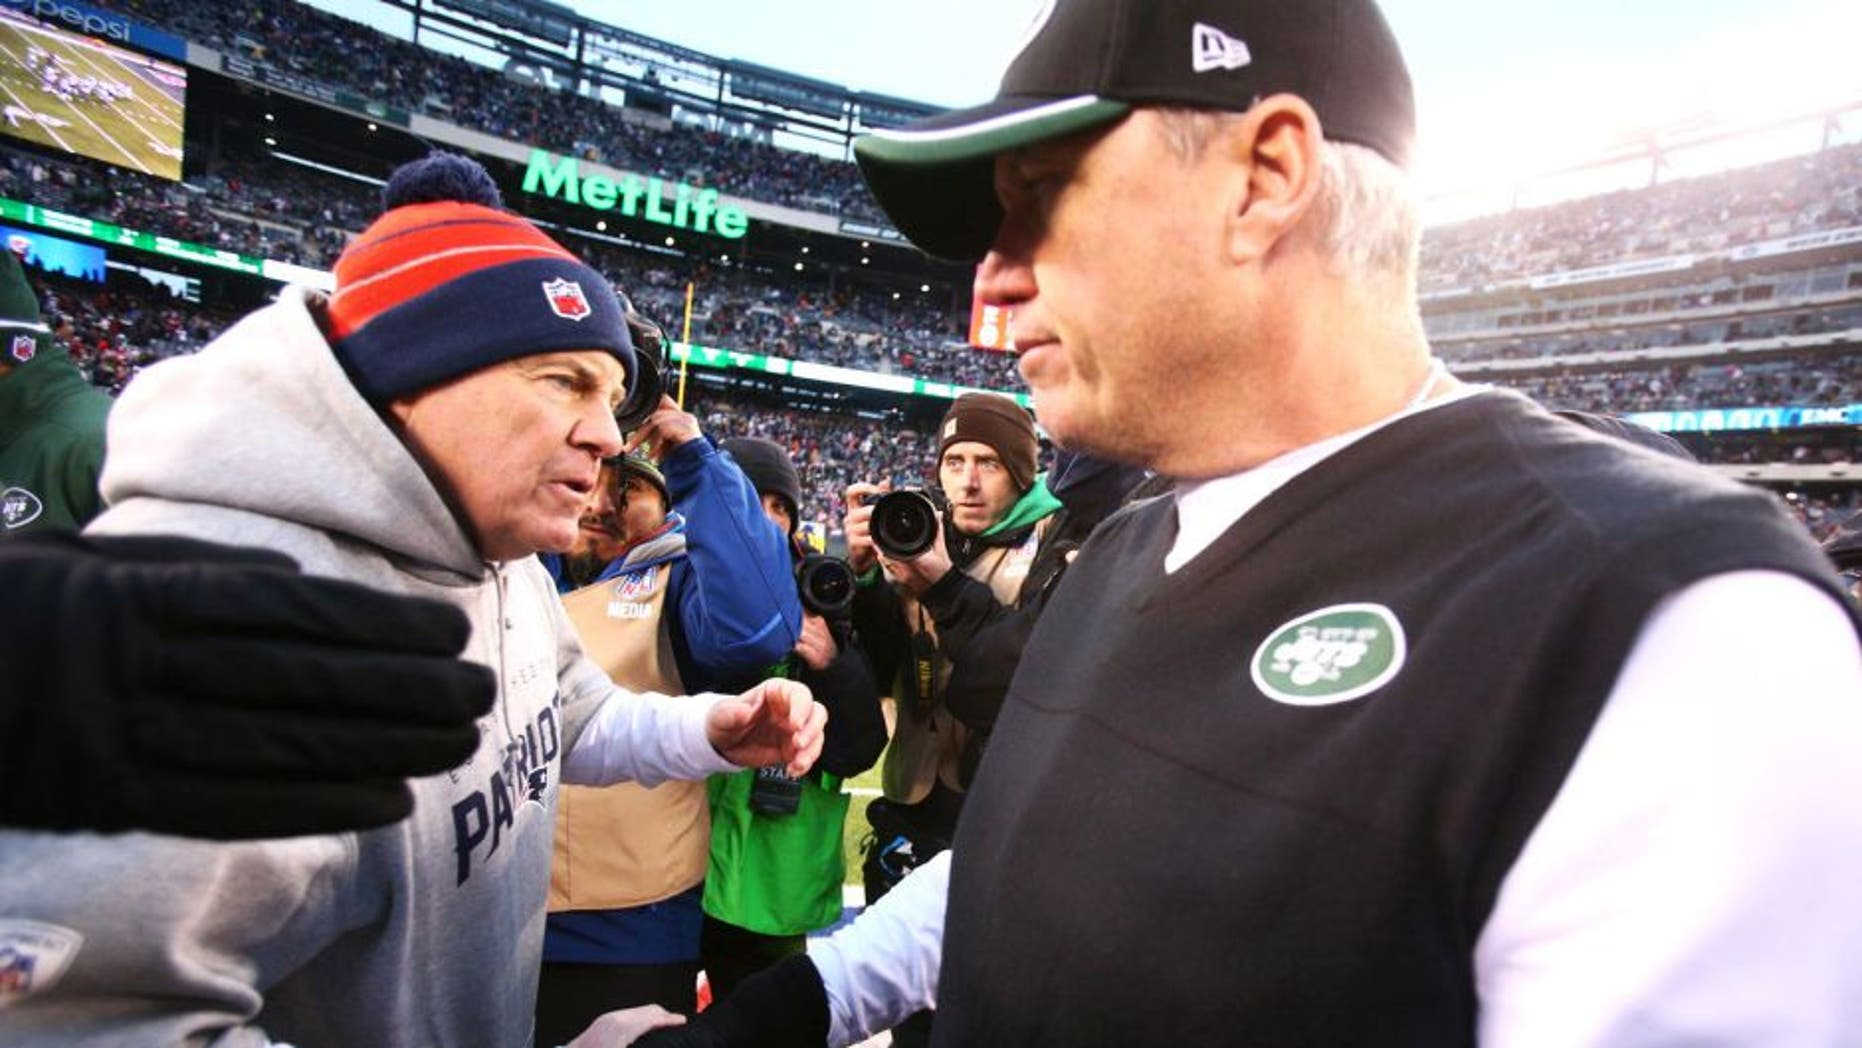 Dec 21, 2014; East Rutherford, NJ, USA; New England Patriots head coach Bill Belichick (left) shakes hands with New York Jets head coach Rex Ryan after a game at MetLife Stadium. The Patriots defeated the Jets 17-16. Mandatory Credit: Brad Penner-USA TODAY Sports